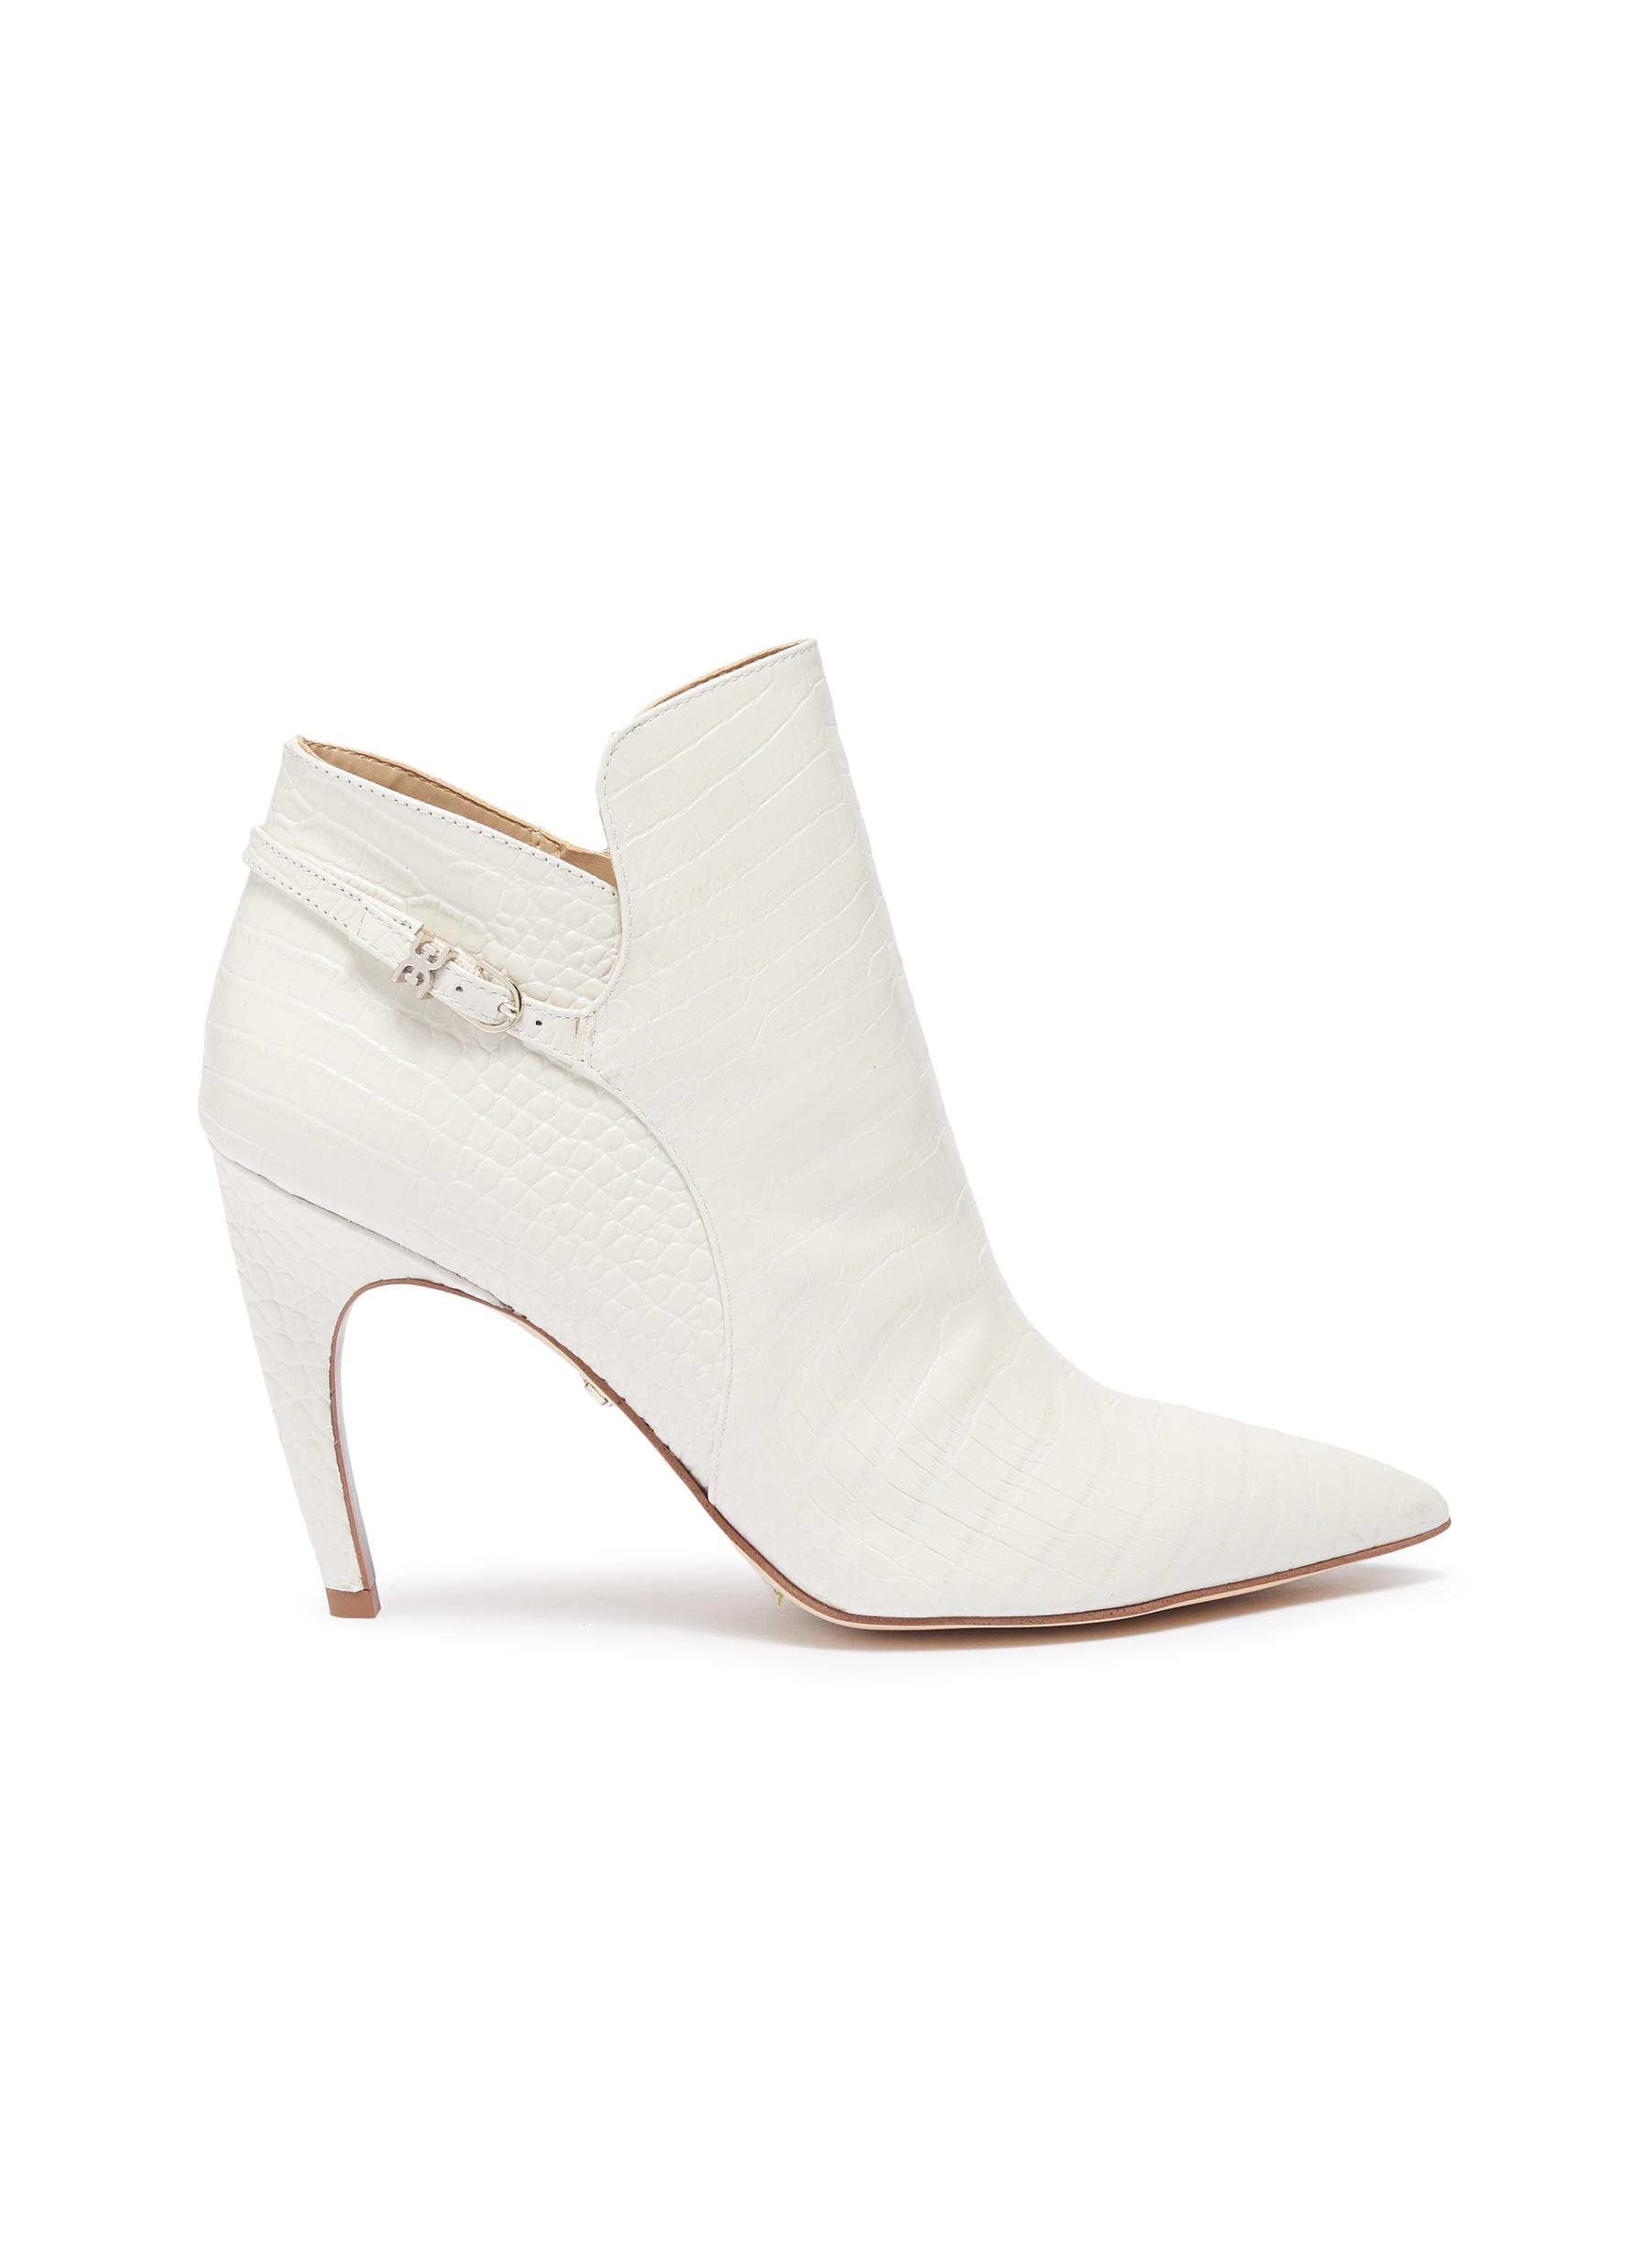 Fiora croc-embossed leather ankle boots by Sam Edelman